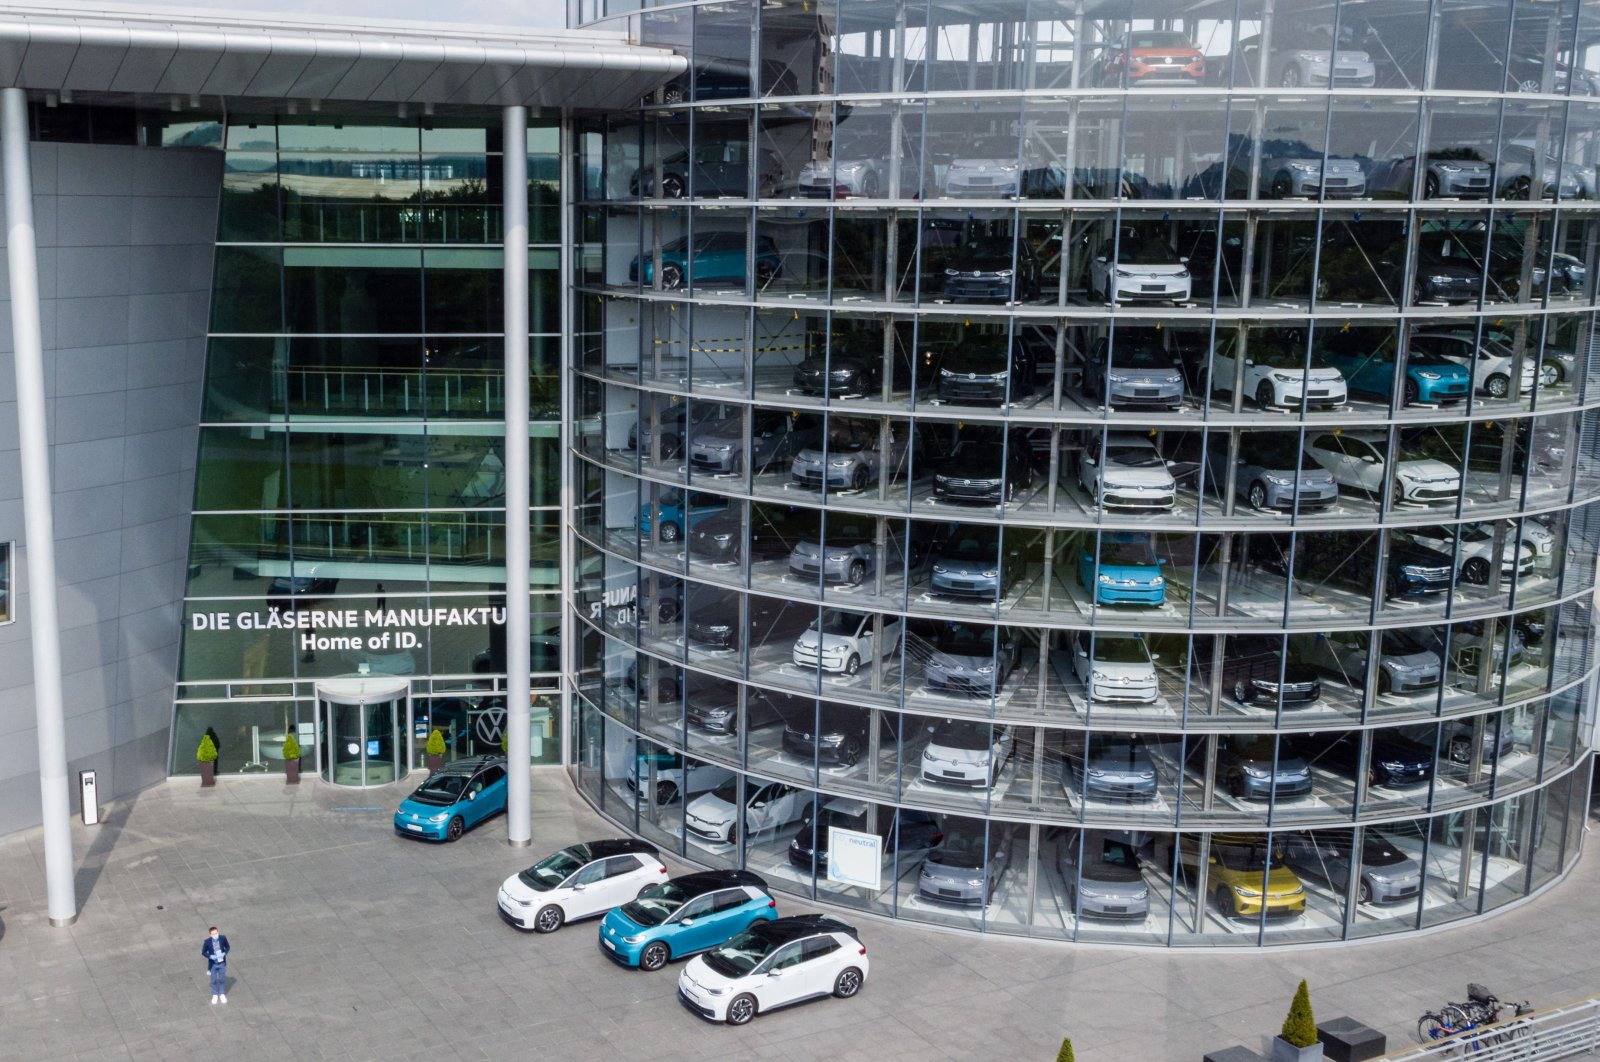 ID 3 electric cars of German carmaker Volkswagen are pictured at the Glassy Manufactory (Glaeserne Manufaktur) production site in Dresden, eastern Germany, June 8, 2021. (AFP Photo)